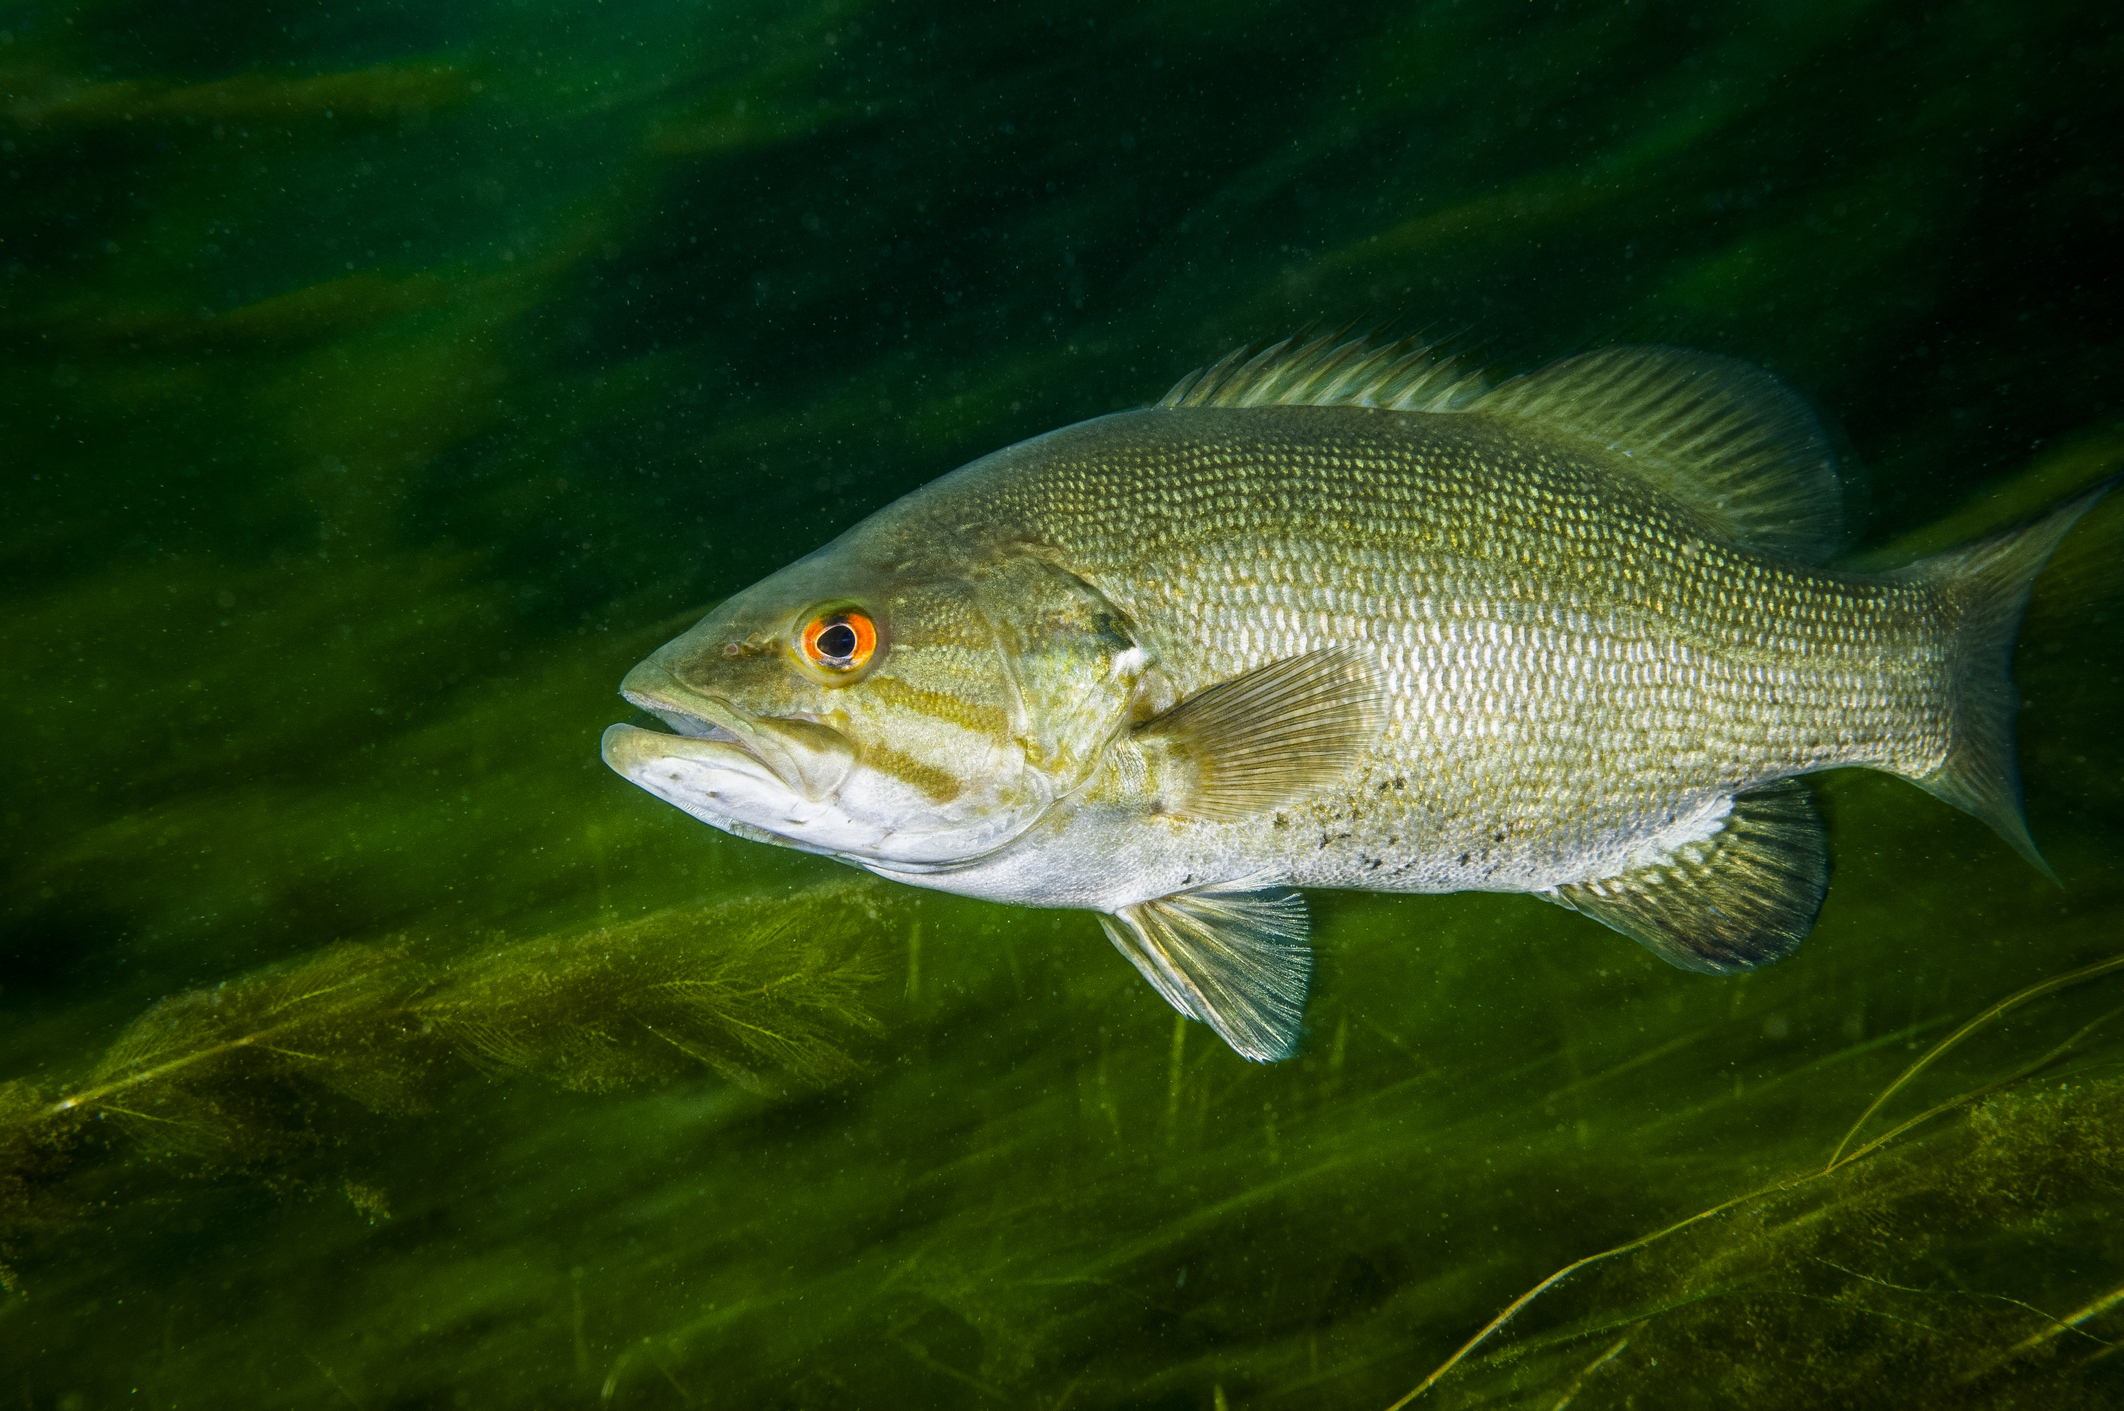 A fish navigating a grassy riverbed in murky green light.